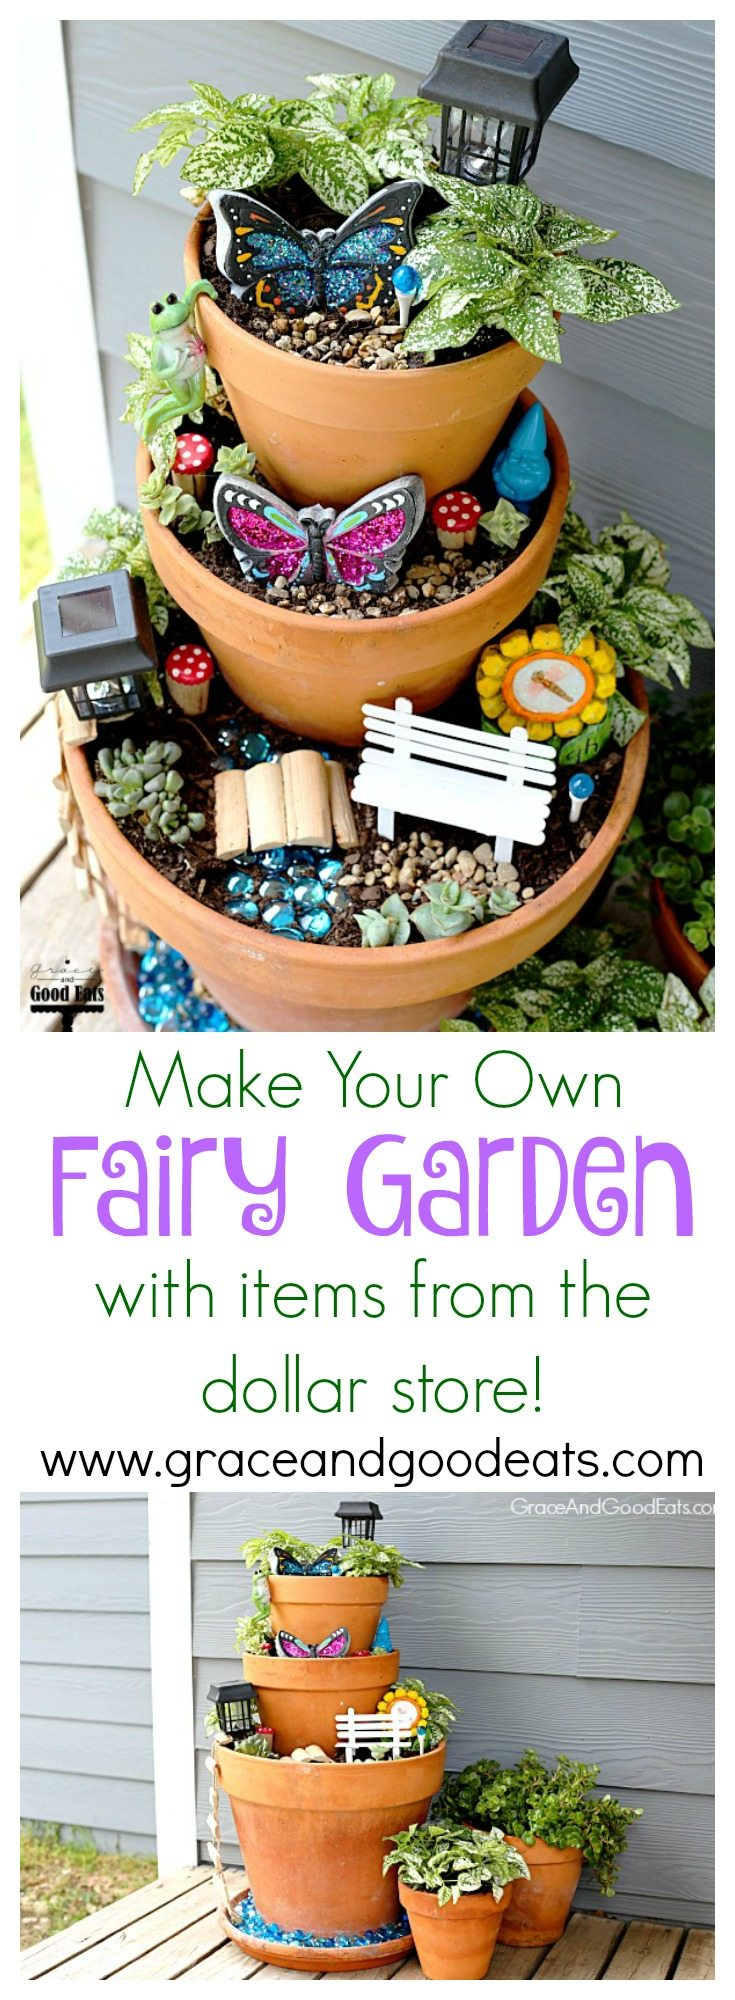 An easy tutorial on how to make your own DIY Fairy Garden.  I made this fairy garden with my kids after we found tons of cute, inexpensive supplies at our neighborhood dollar store.